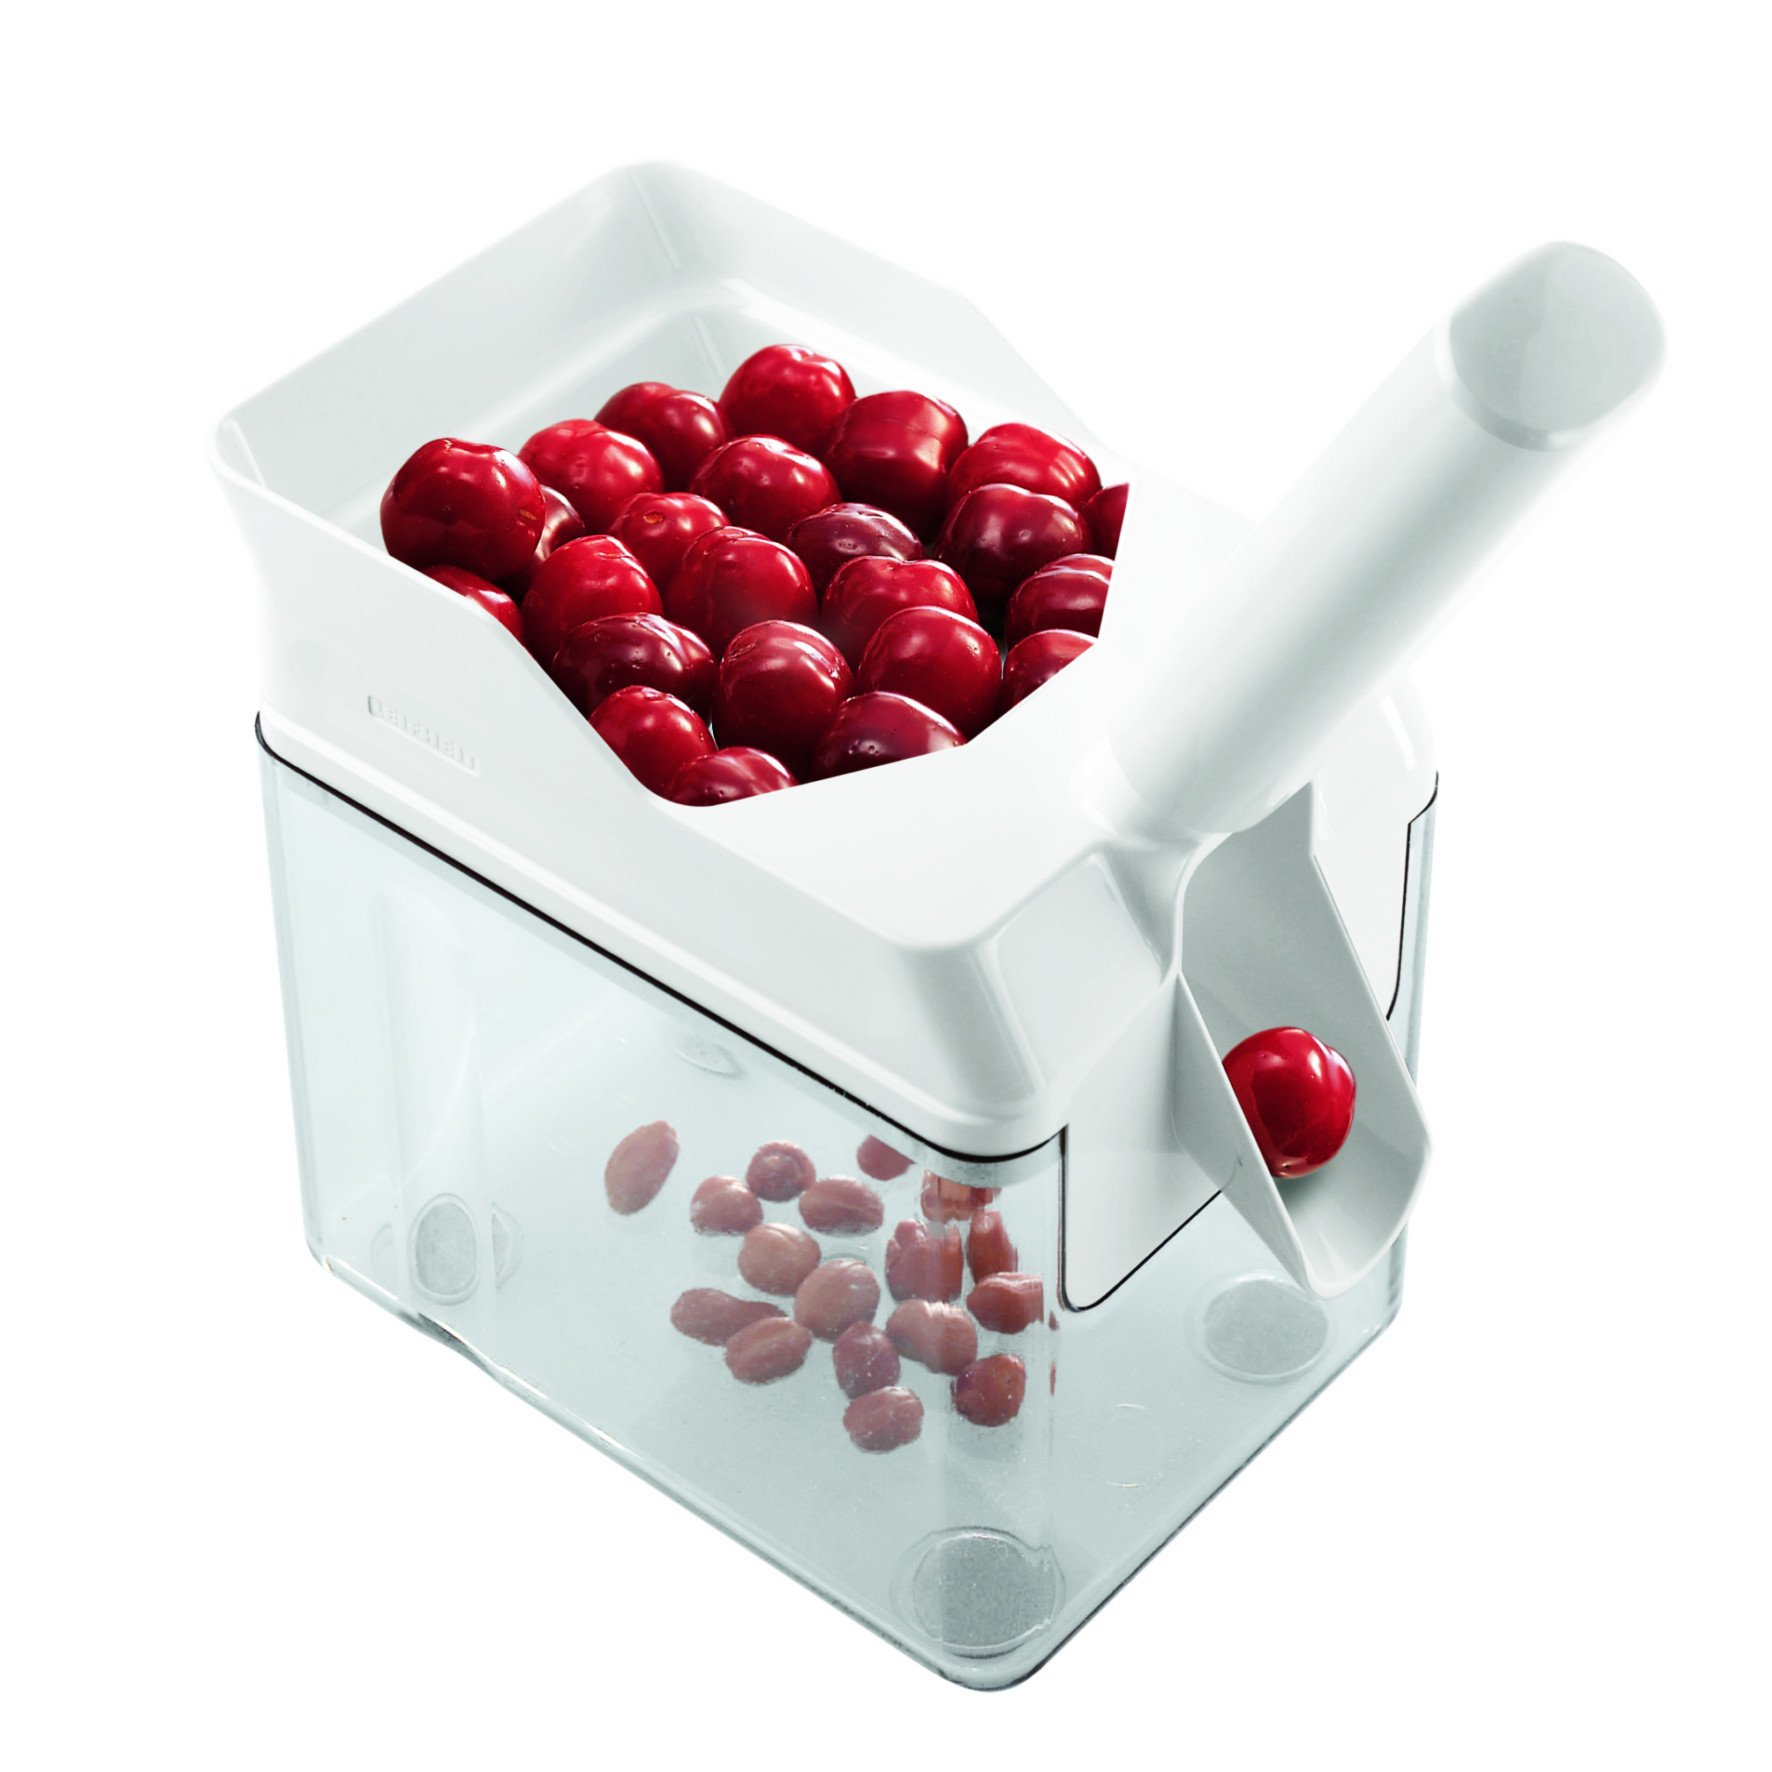 Leifheit 37200 Cherry Pitter with Stone Catcher Container | Cherry Stone Remover Tool by Leifheit